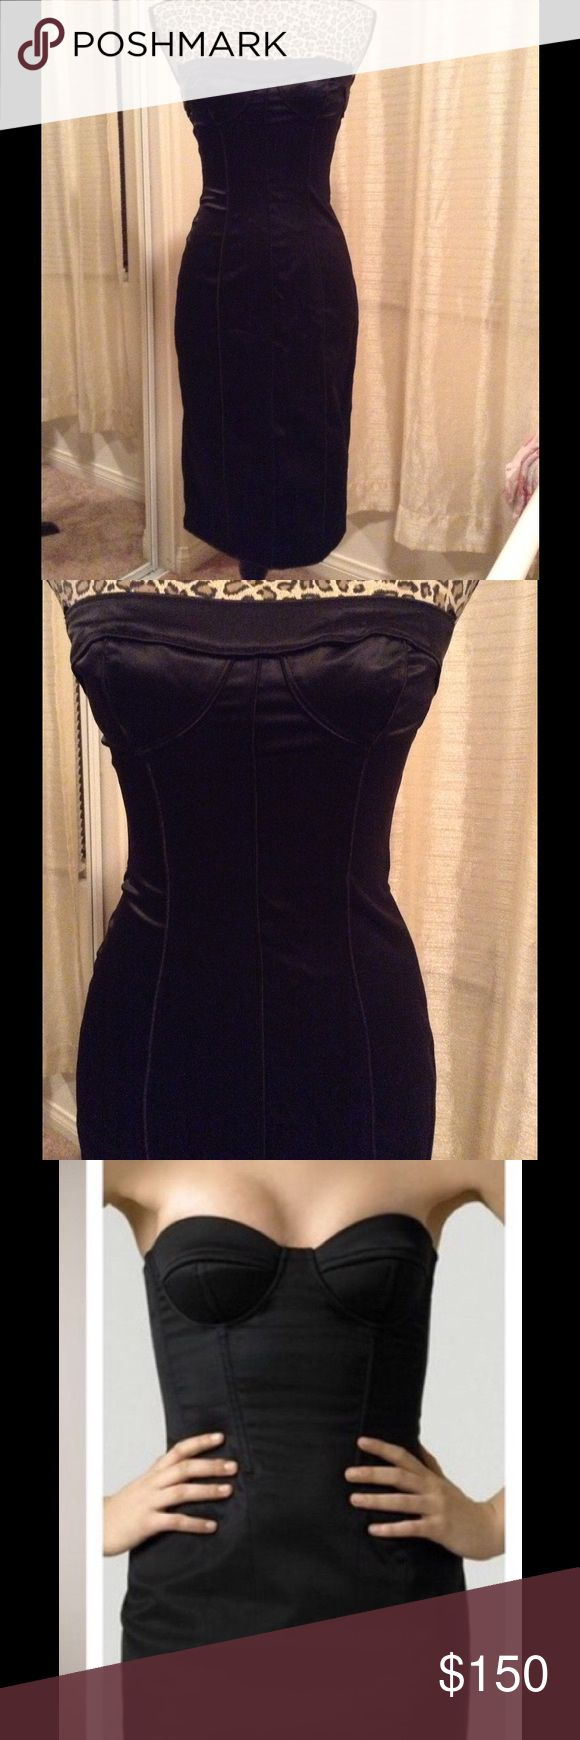 D&G Strapless Corset Stretchy Dress Size 42 converts to US 4/6, worn once, satin material, stretchy, below knee length D&G Dresses Midi